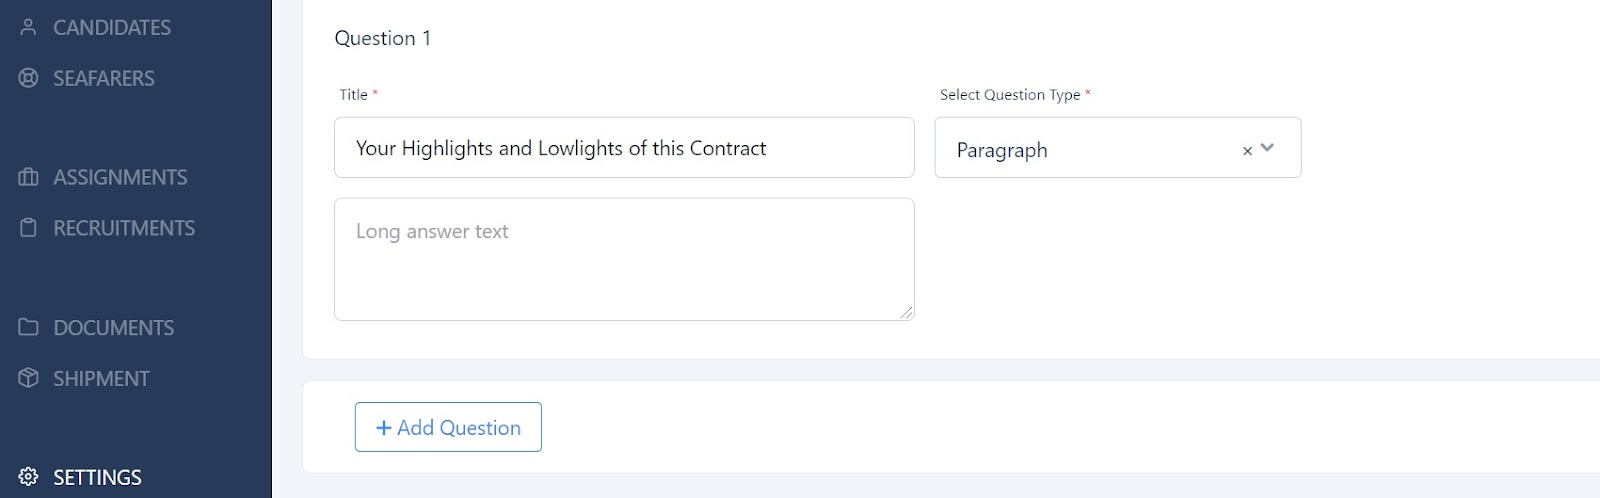 screenshot of Martide's website showing a paragraph type question.